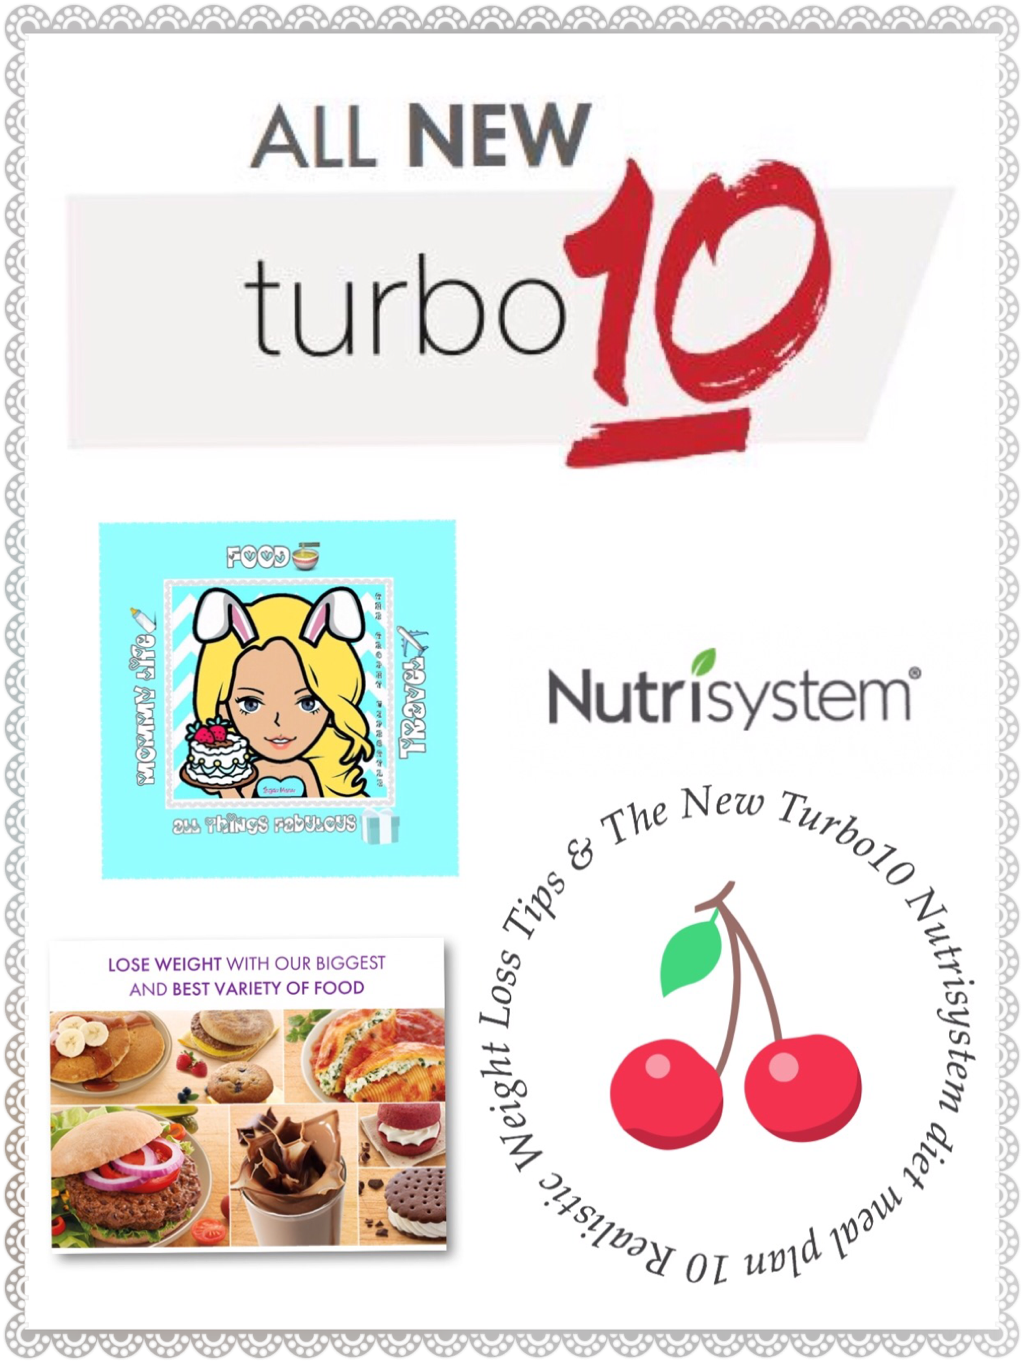 10 Realistic Weight Loss Tips & The New Turbo10 Nutrisystem diet meal plan